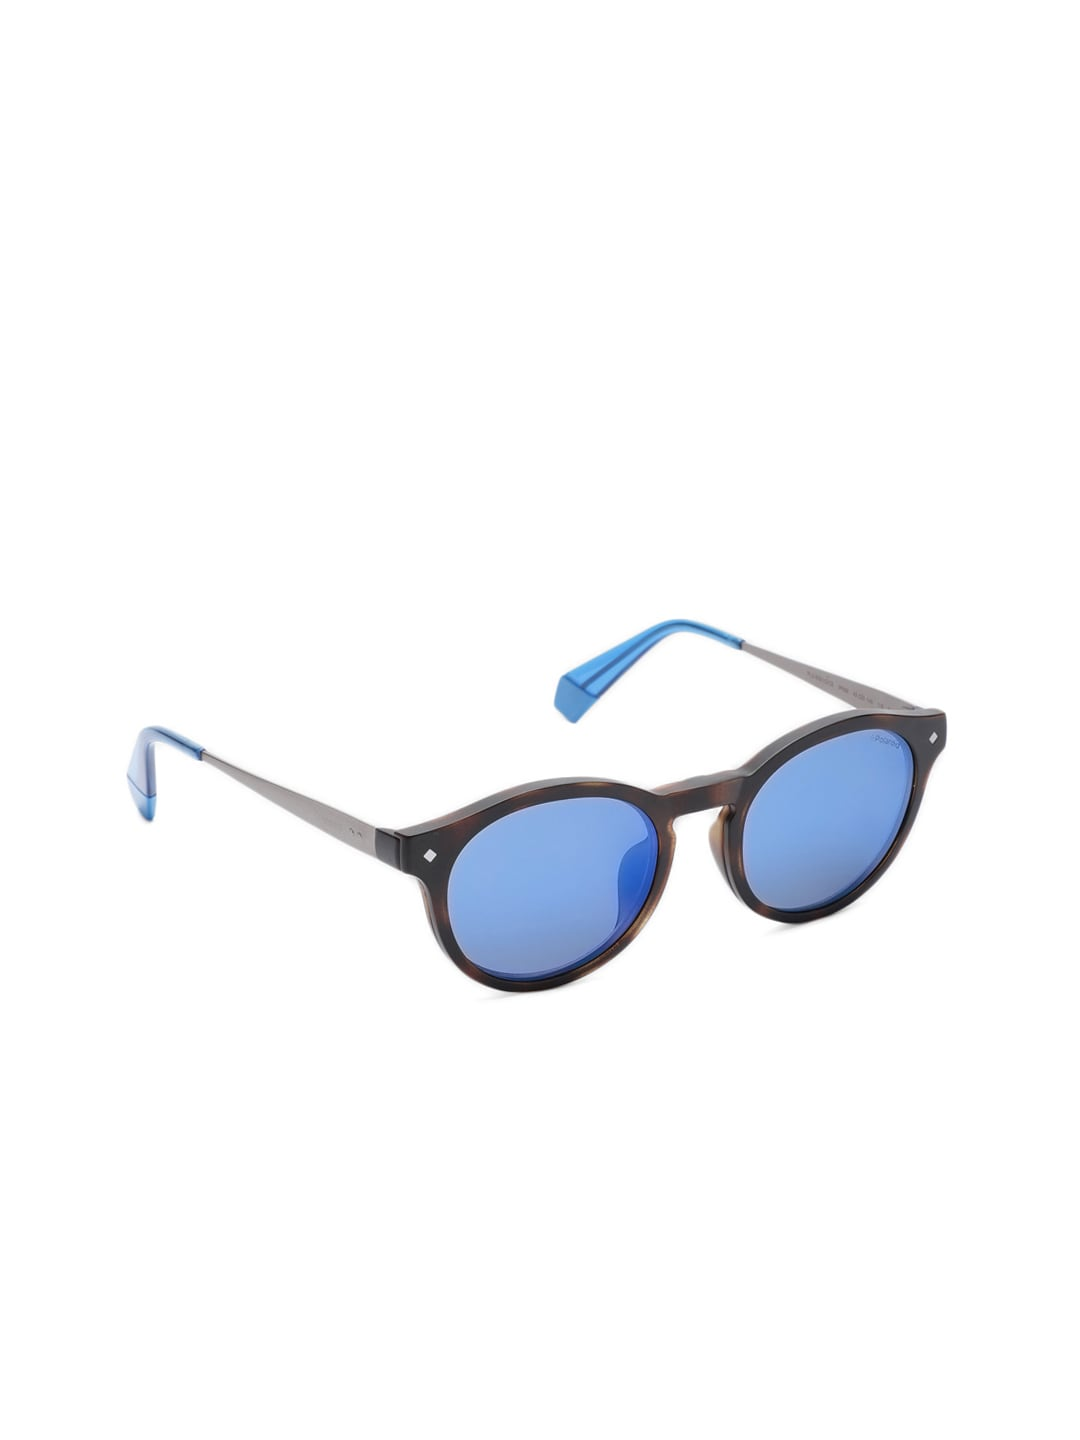 7dcd735a2 Tight Trousers 3 Sunglasses - Buy Tight Trousers 3 Sunglasses online in  India